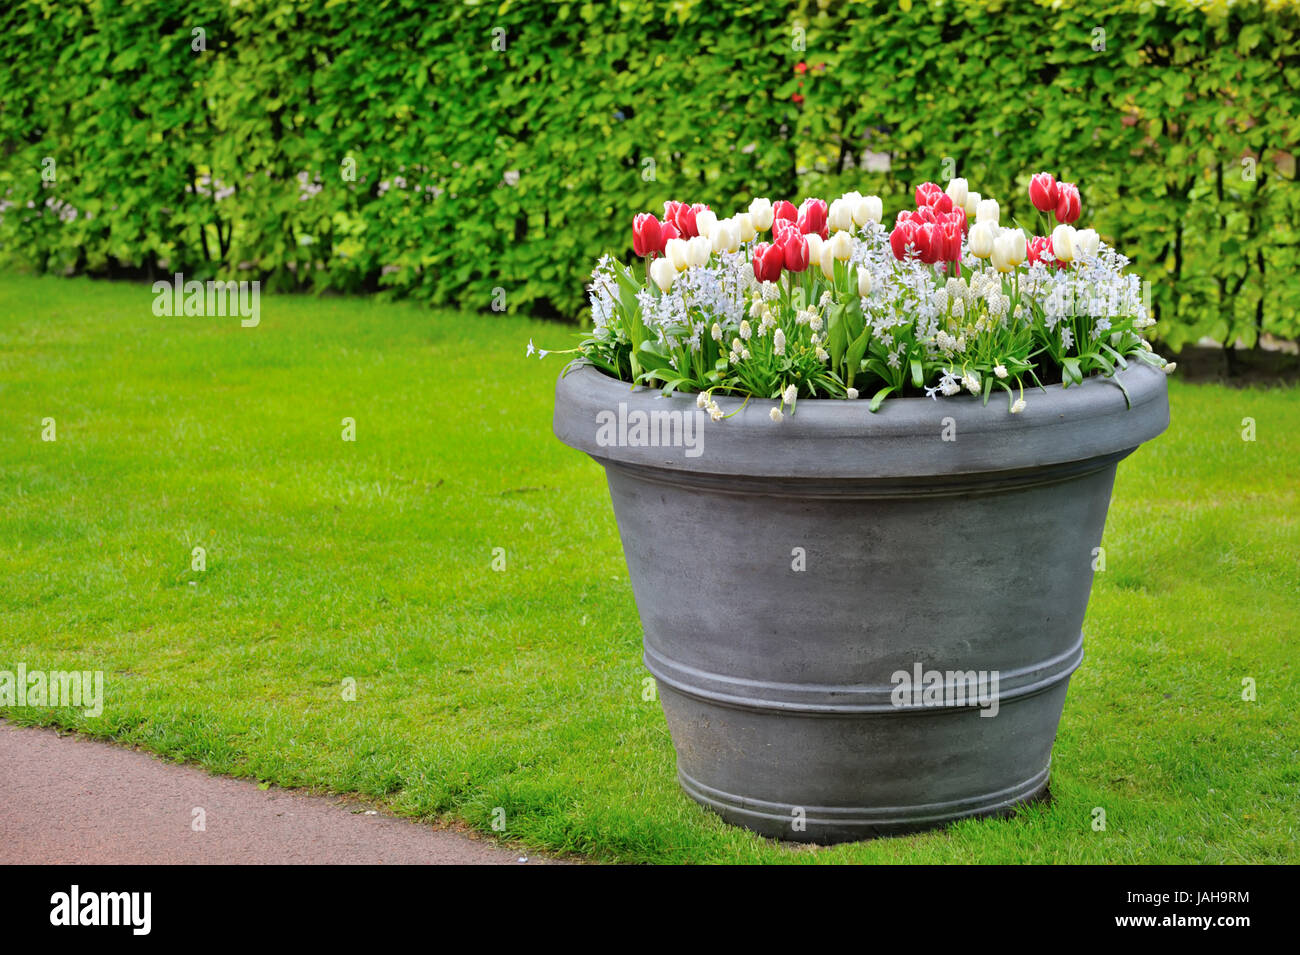 Basket Of Spring Flowers In Garden Shoot Stock Photo 144210408 Alamy